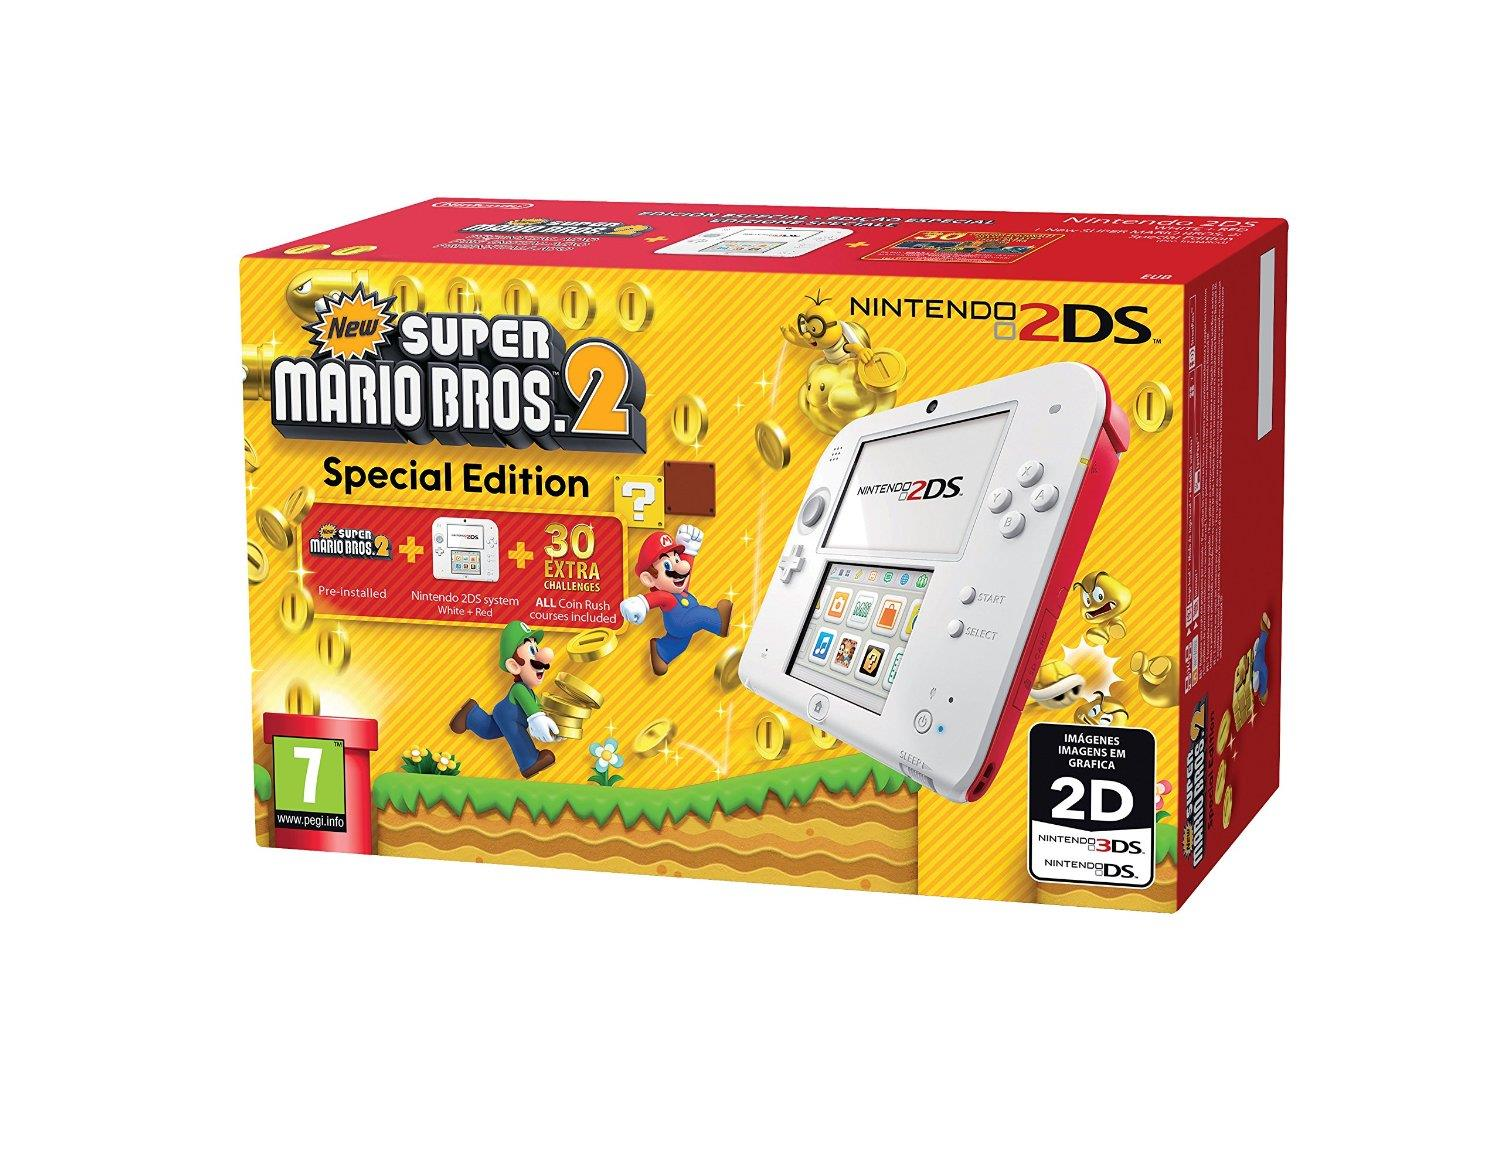 NINTENDO CONSOLE NINTENDO 2DS WHITE+RED+GAME SUPER MARIO BROS.2